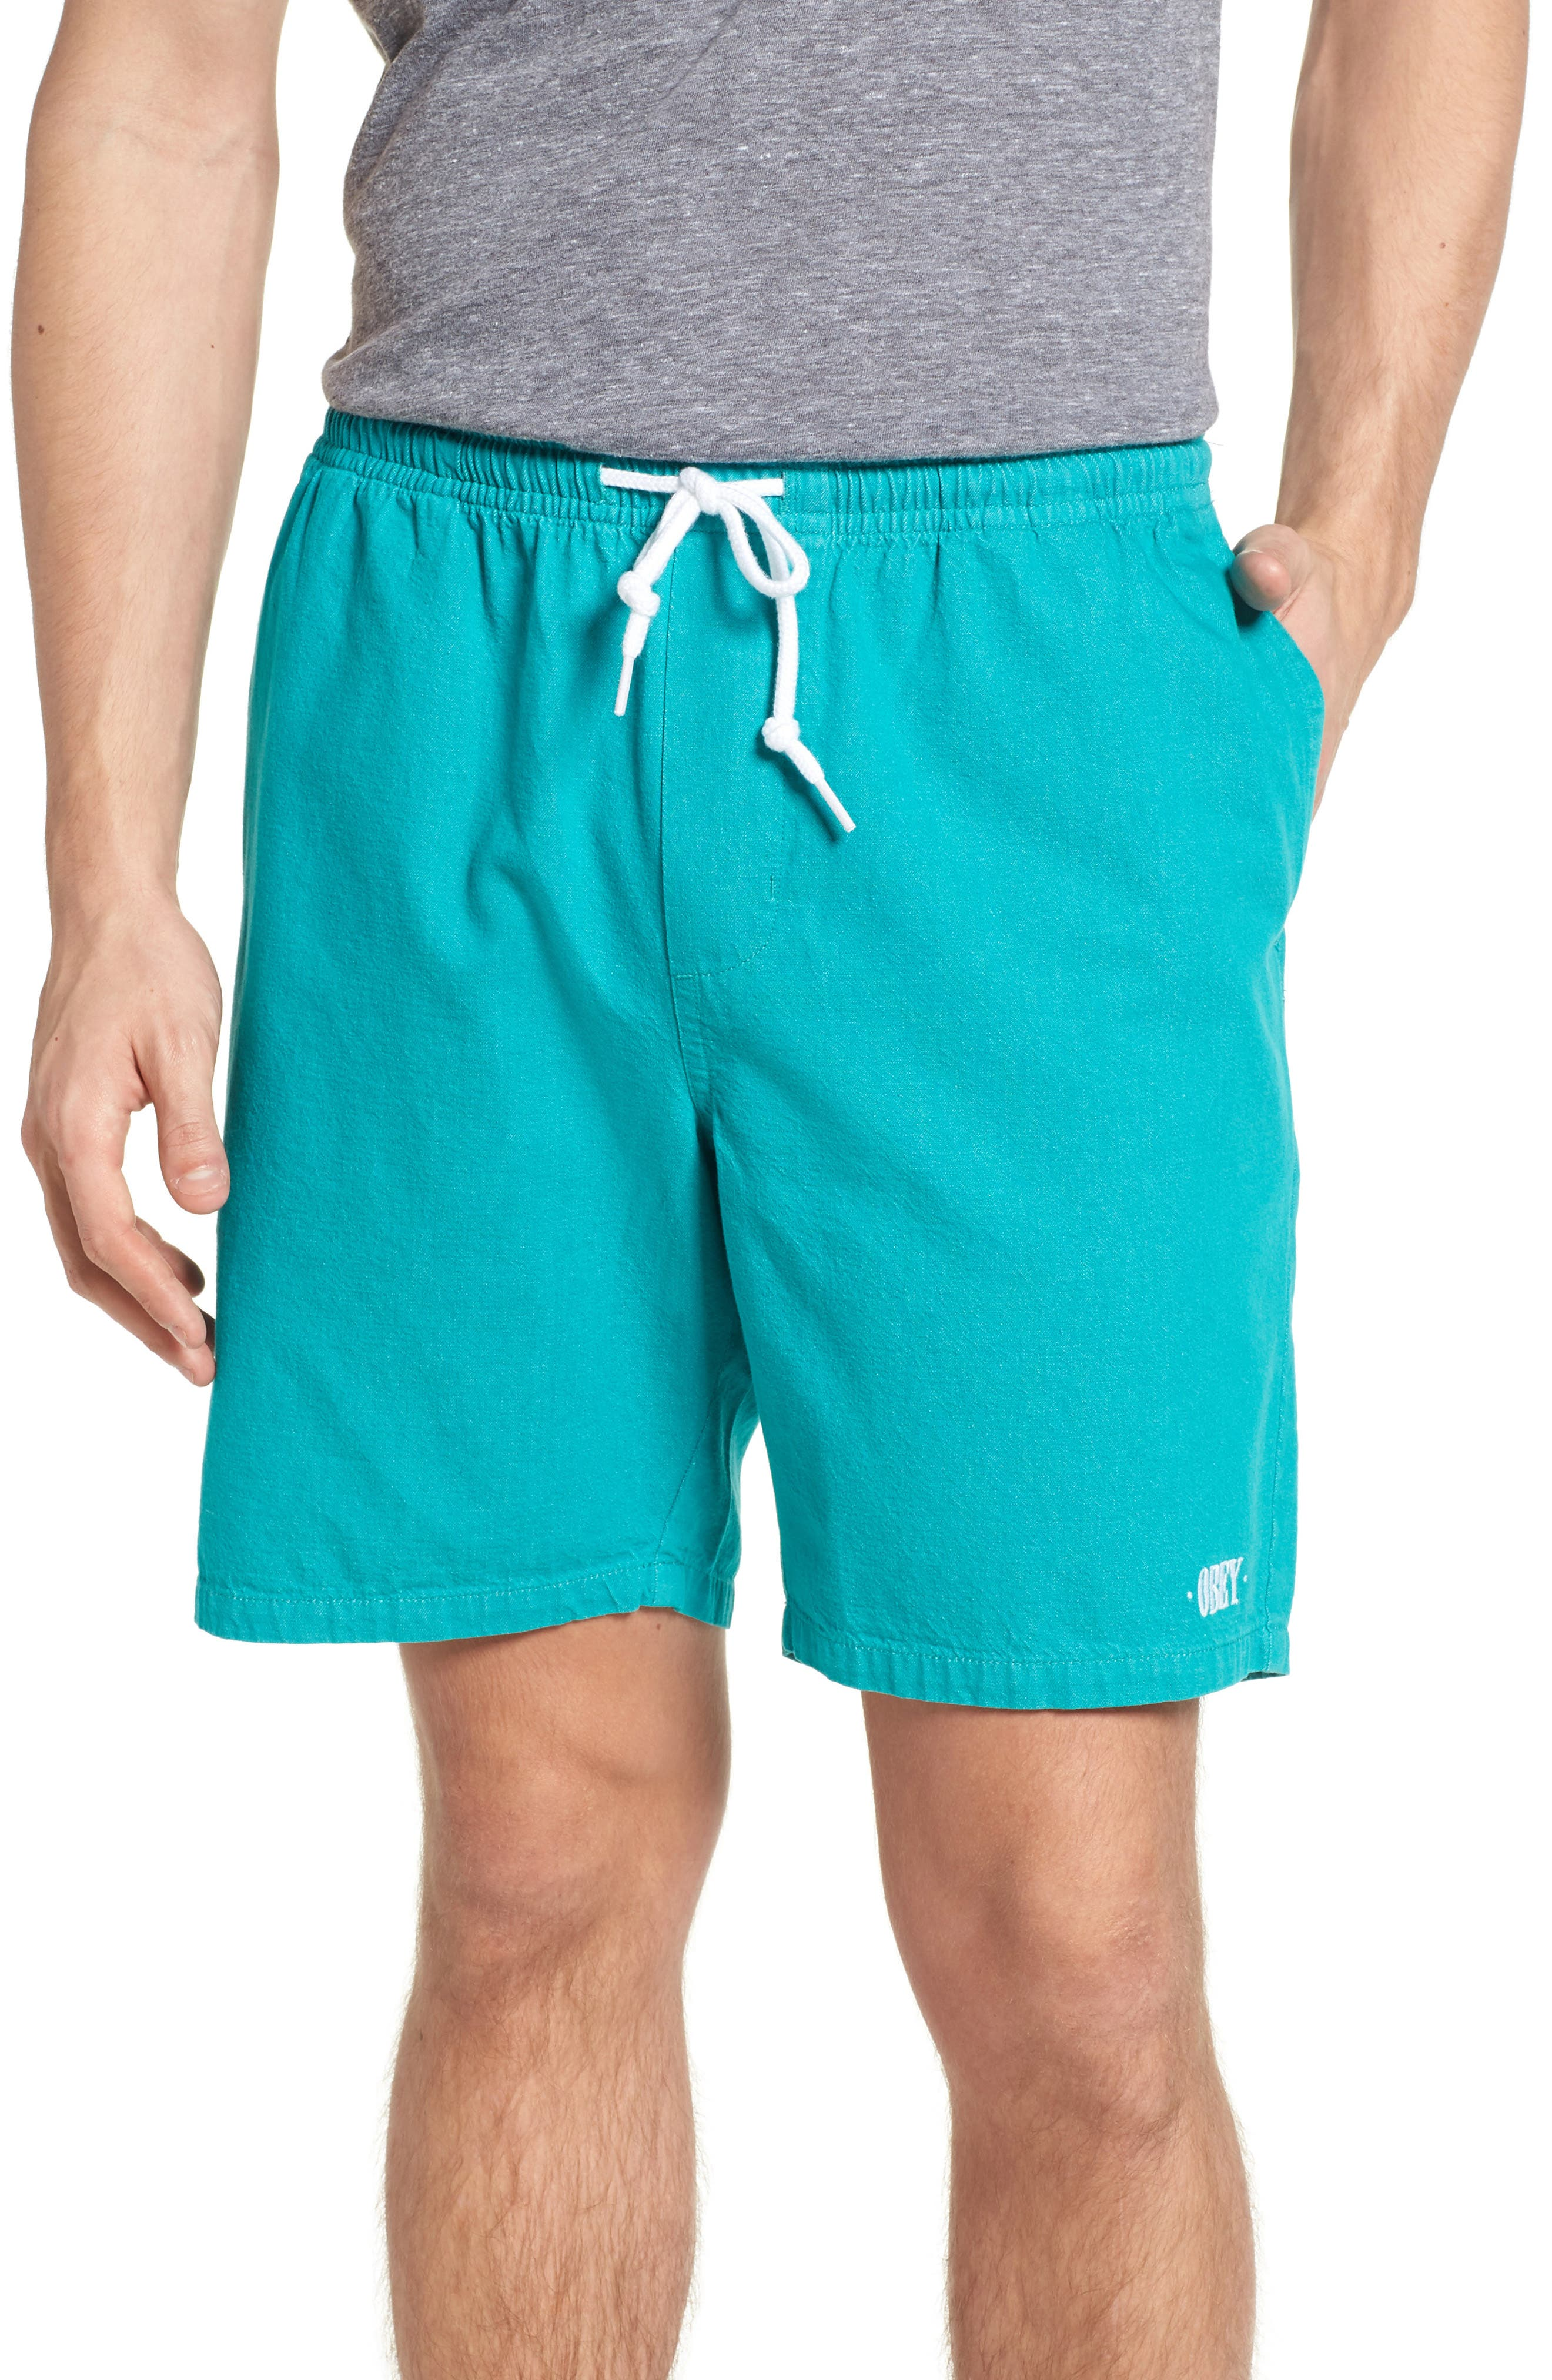 Keble Drawstring Shorts,                         Main,                         color, 445